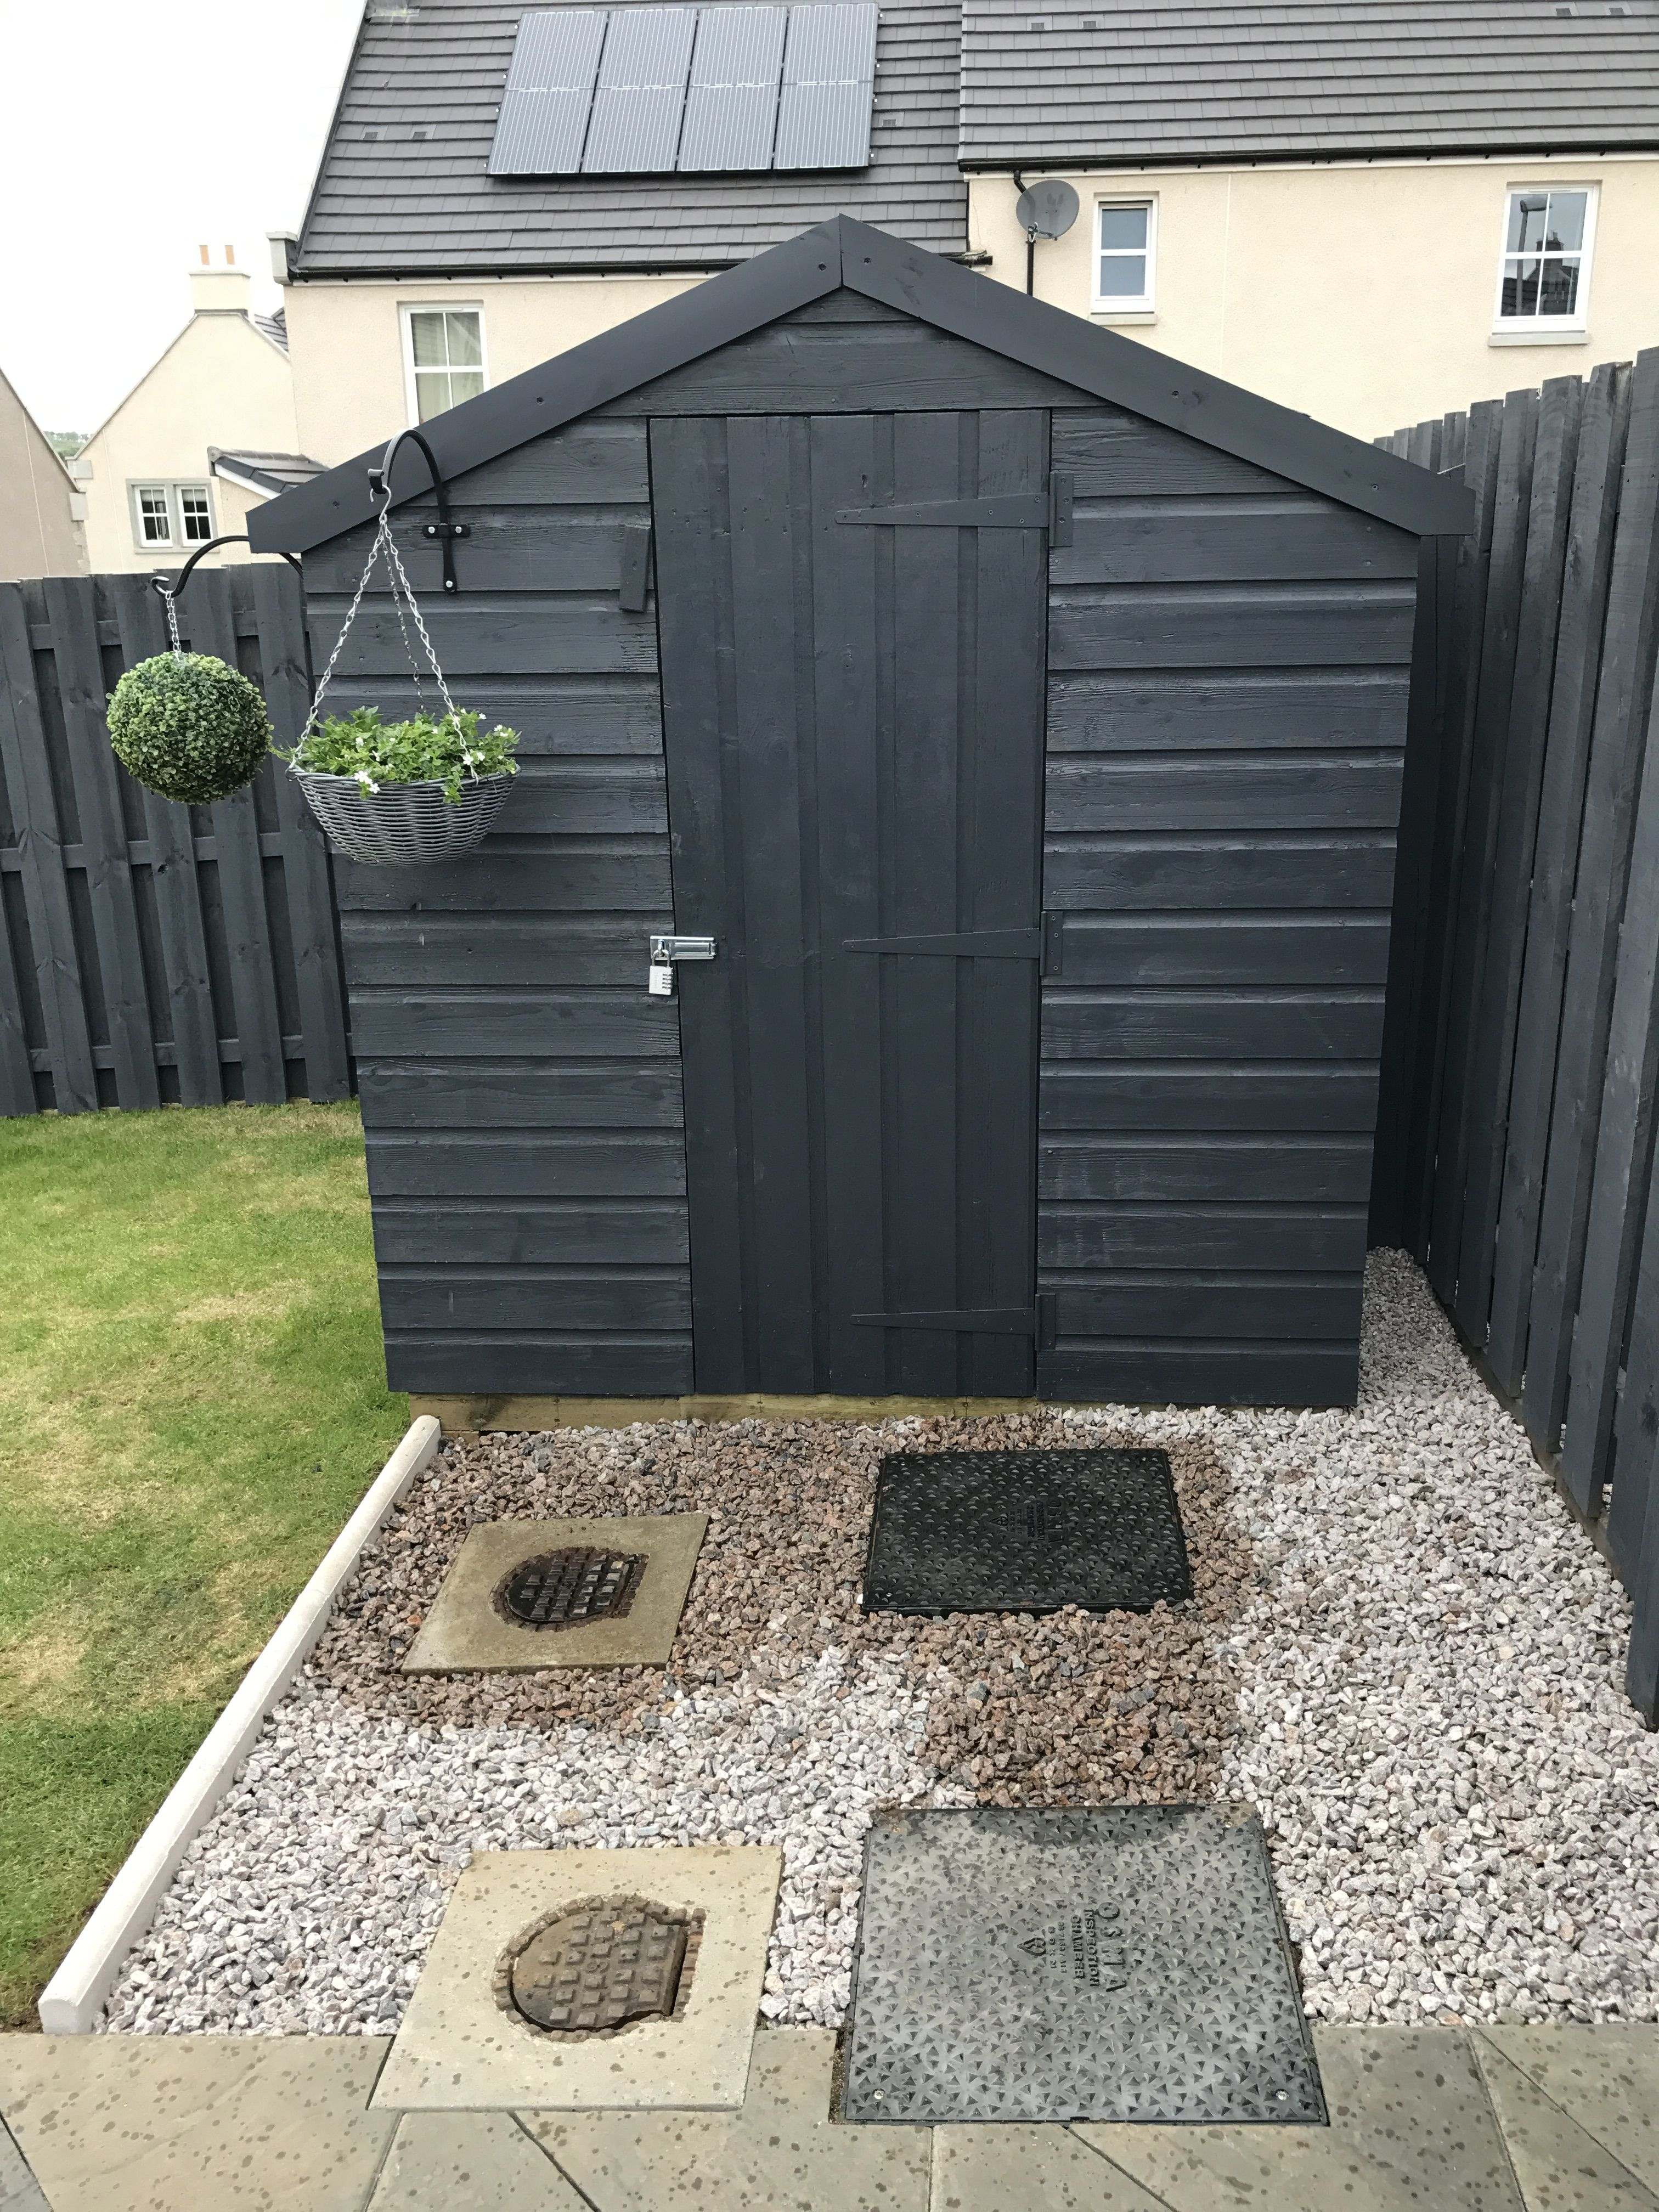 Shed Painted With Cuprinol Garden Shades In Urban Slate Painted Garden Sheds Cuprinol Garden Shades Garden Fence Paint